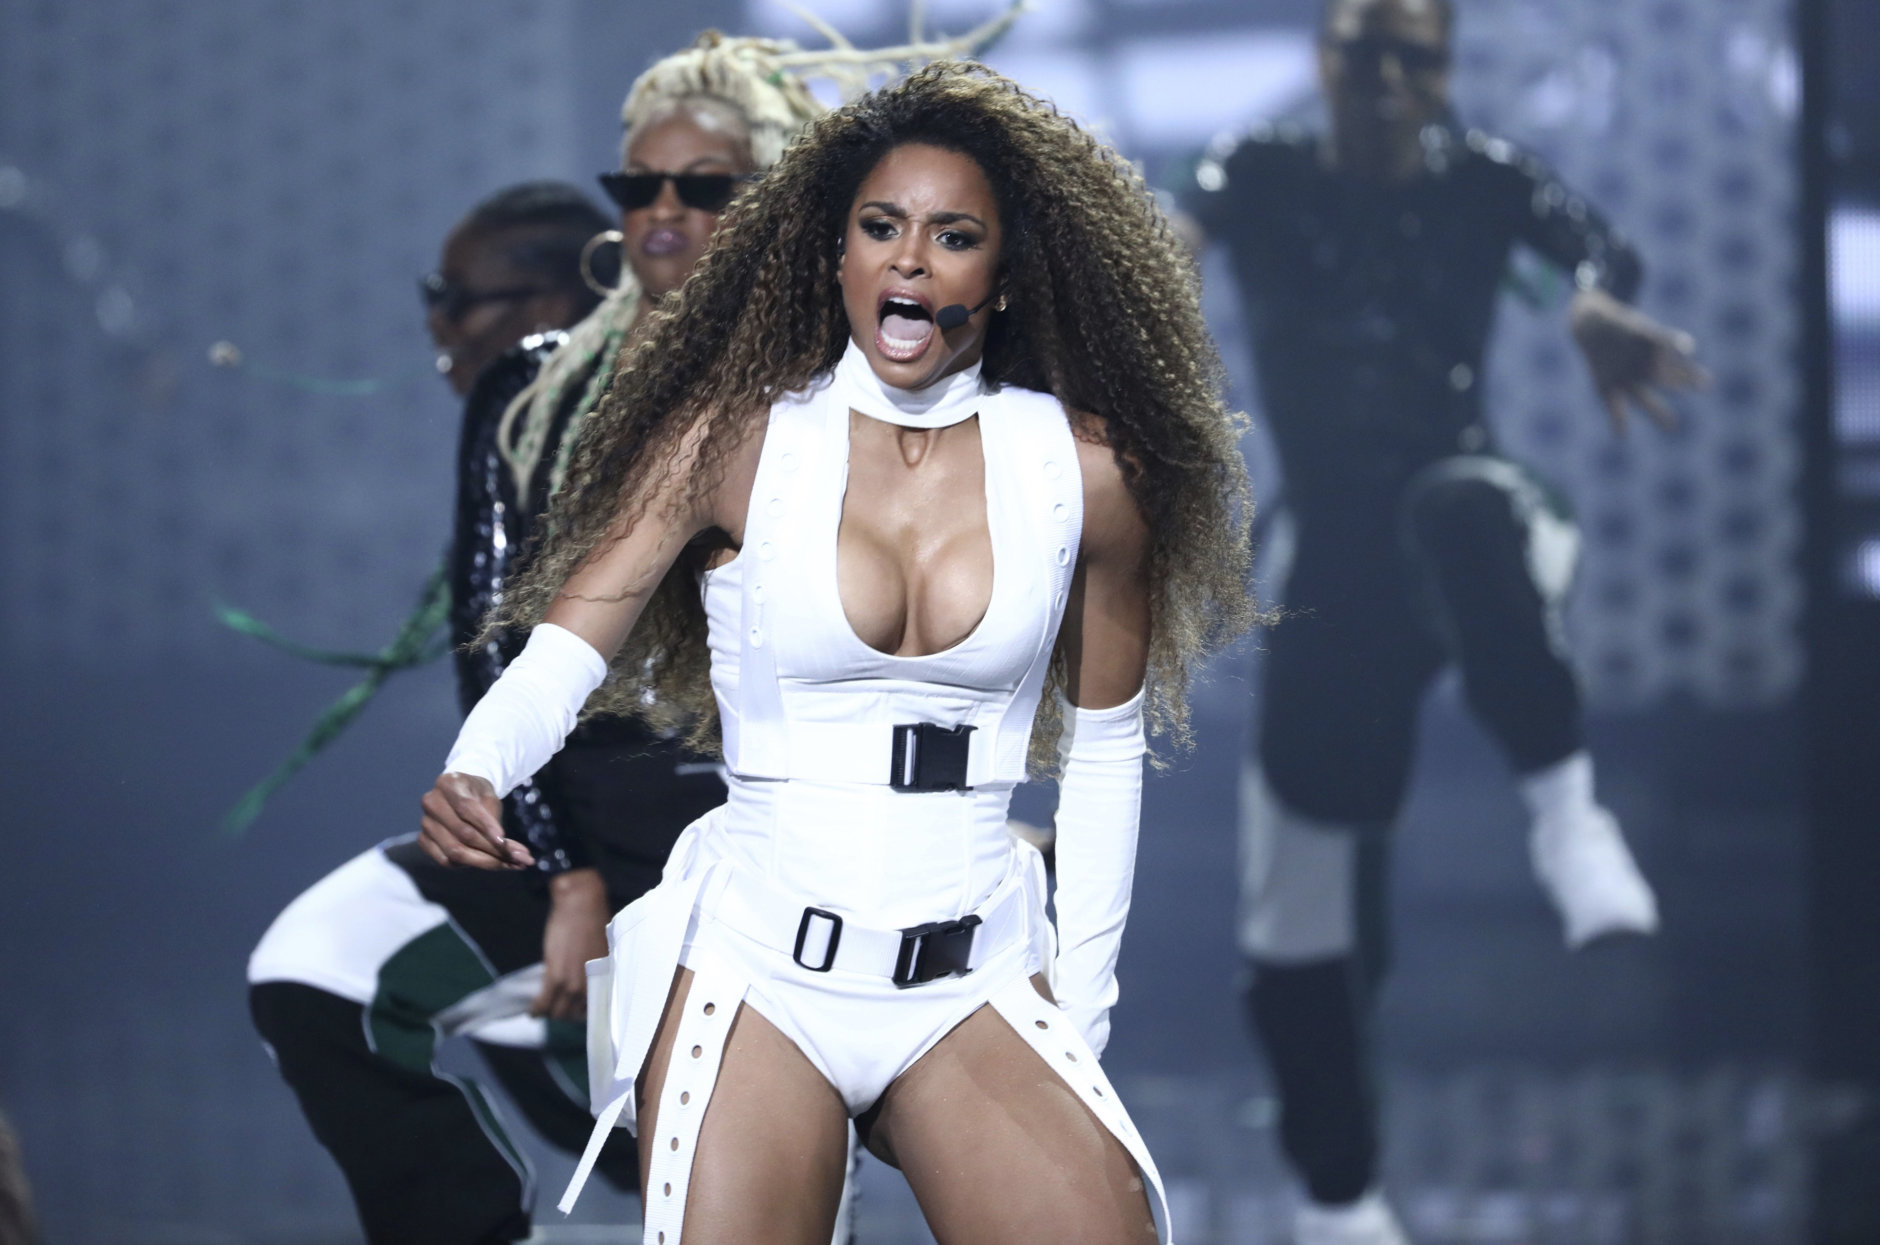 Ciara performs at the American Music Awards on Tuesday, Oct. 9, 2018, at the Microsoft Theater in Los Angeles. (Photo by Matt Sayles/Invision/AP)